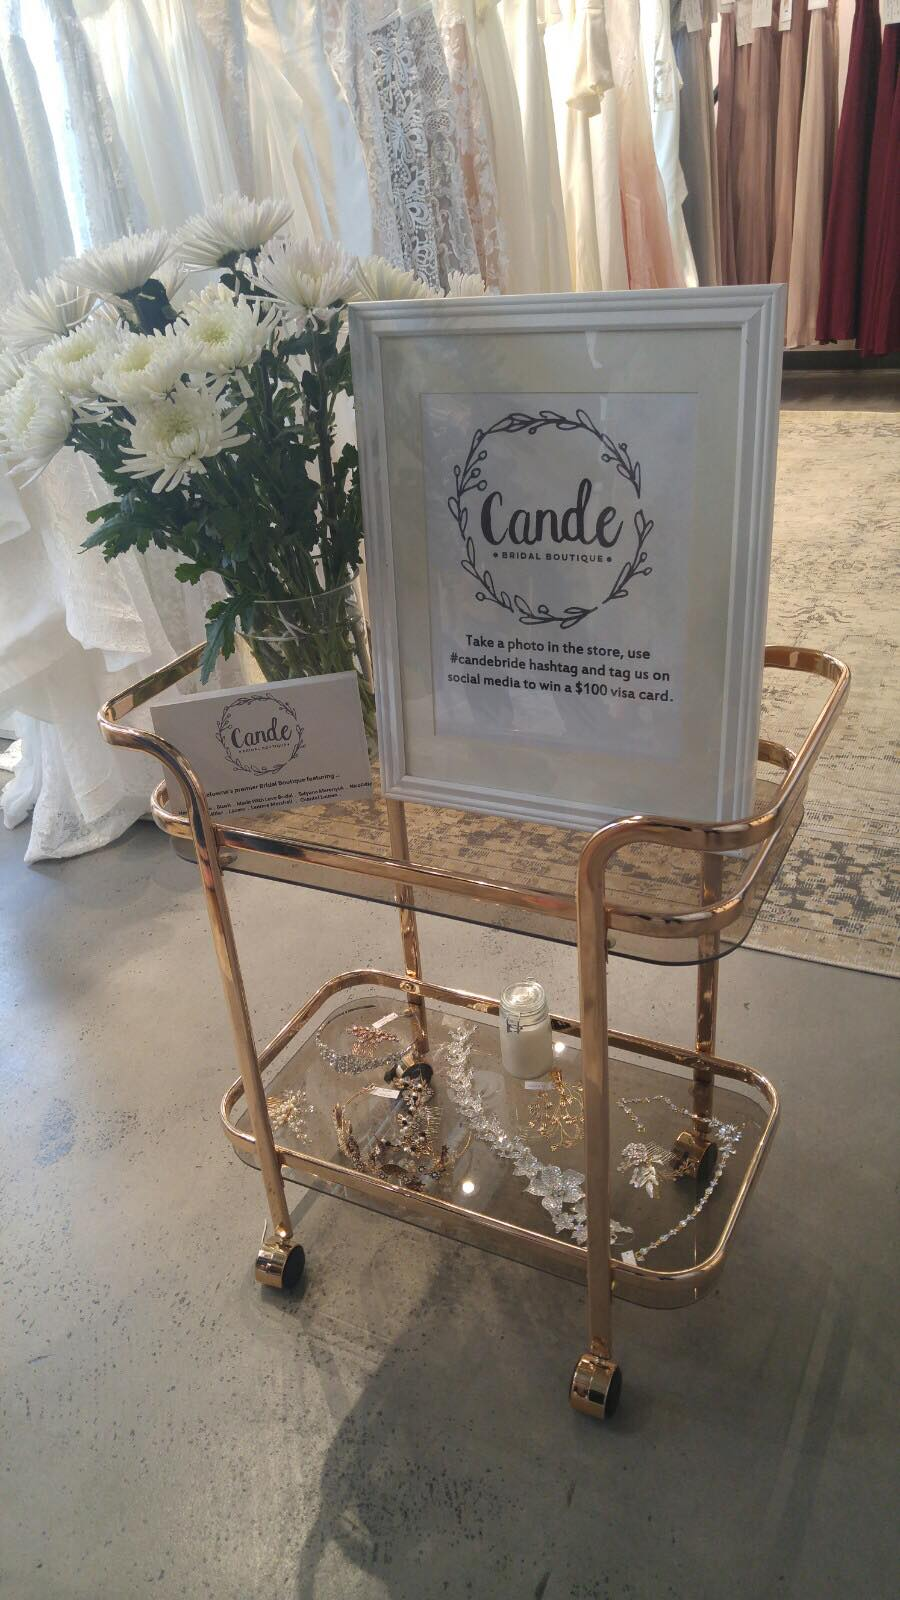 Cande Bridal Boutique | clothing store | 1350 St Paul St #202, Kelowna, BC V1Y 2E1, Canada | 2364202960 OR +1 236-420-2960